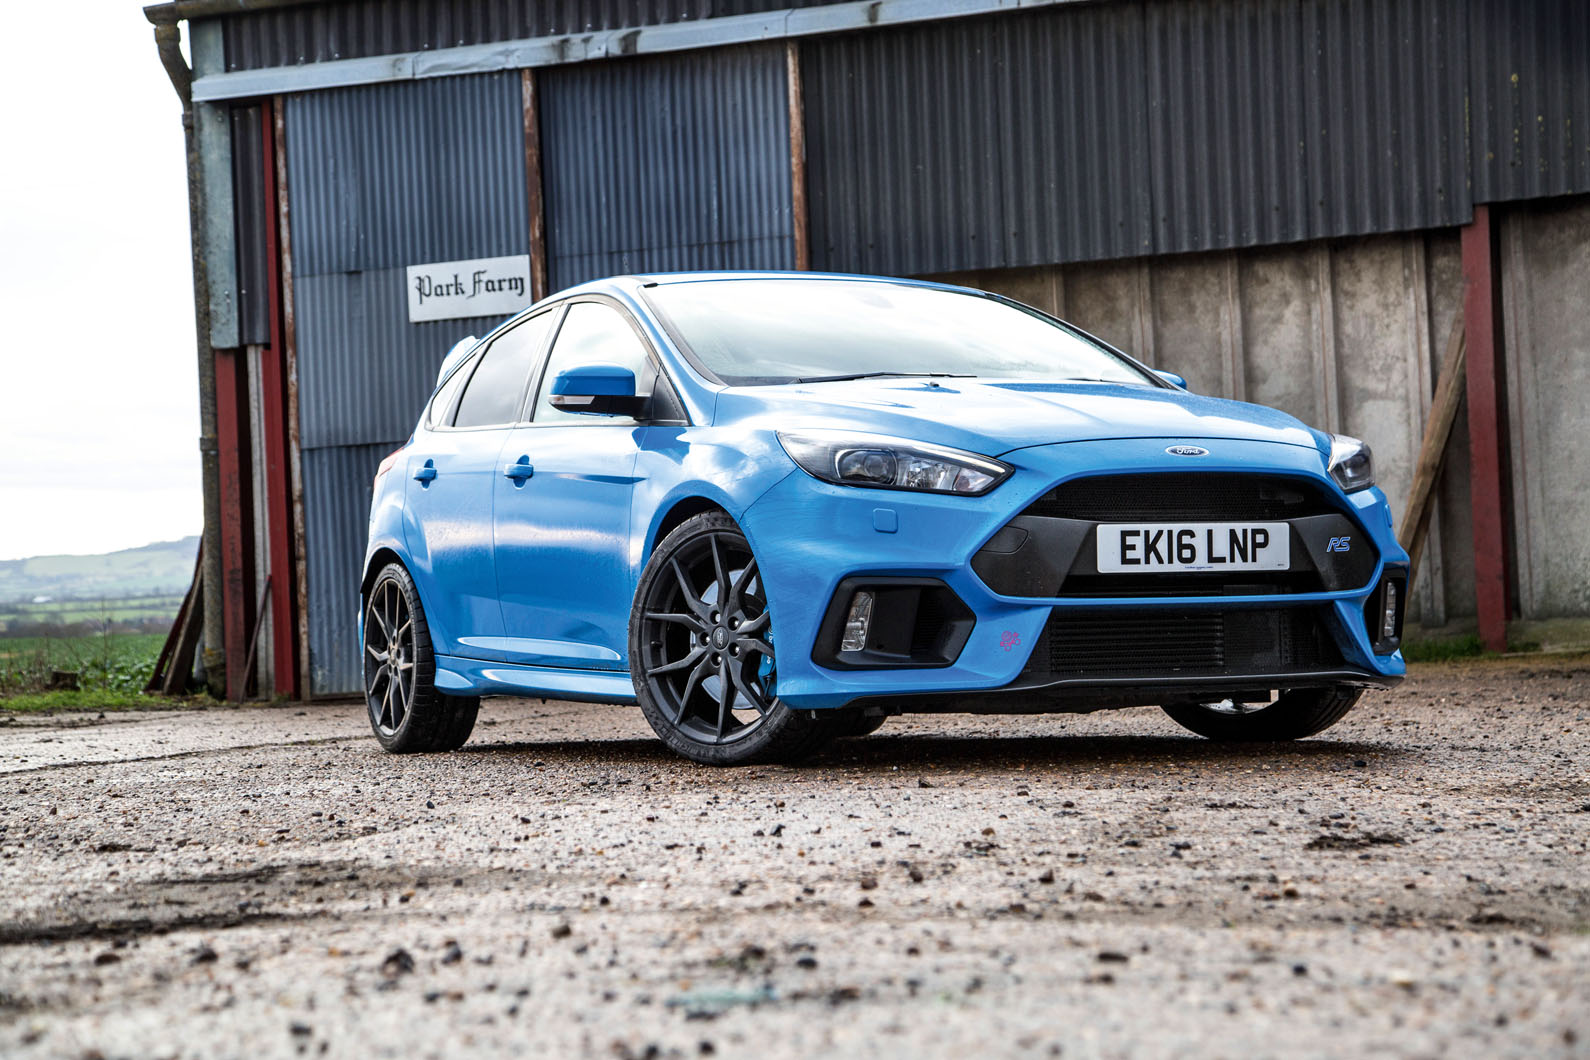 And, in all honesty, the Focus RS didn't initially feel all that amazing at  normal speeds. It felt (whisper it) a bit ordinary, in fact.